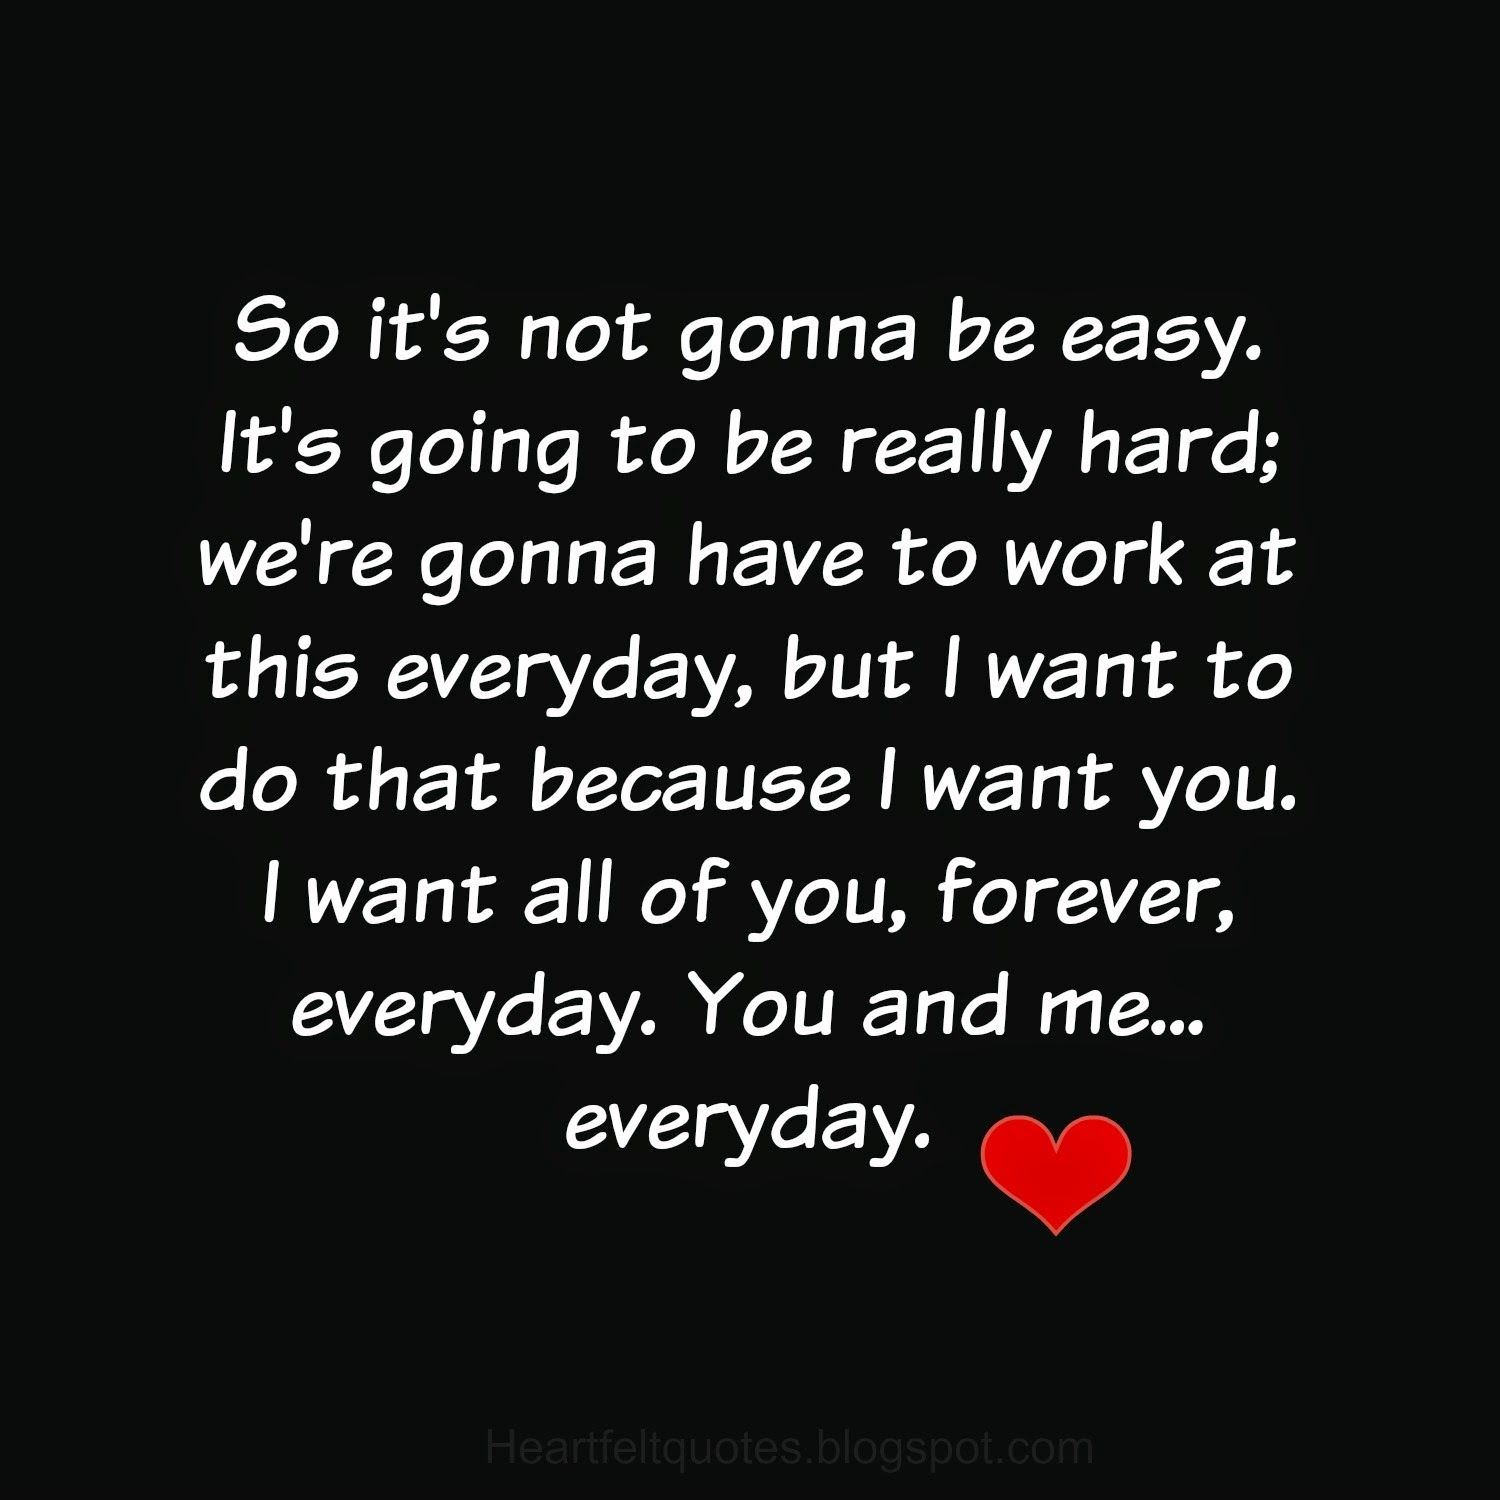 Quotes About Love U Forever : Explore Love You Forever Quotes, Love Quotes, and more!